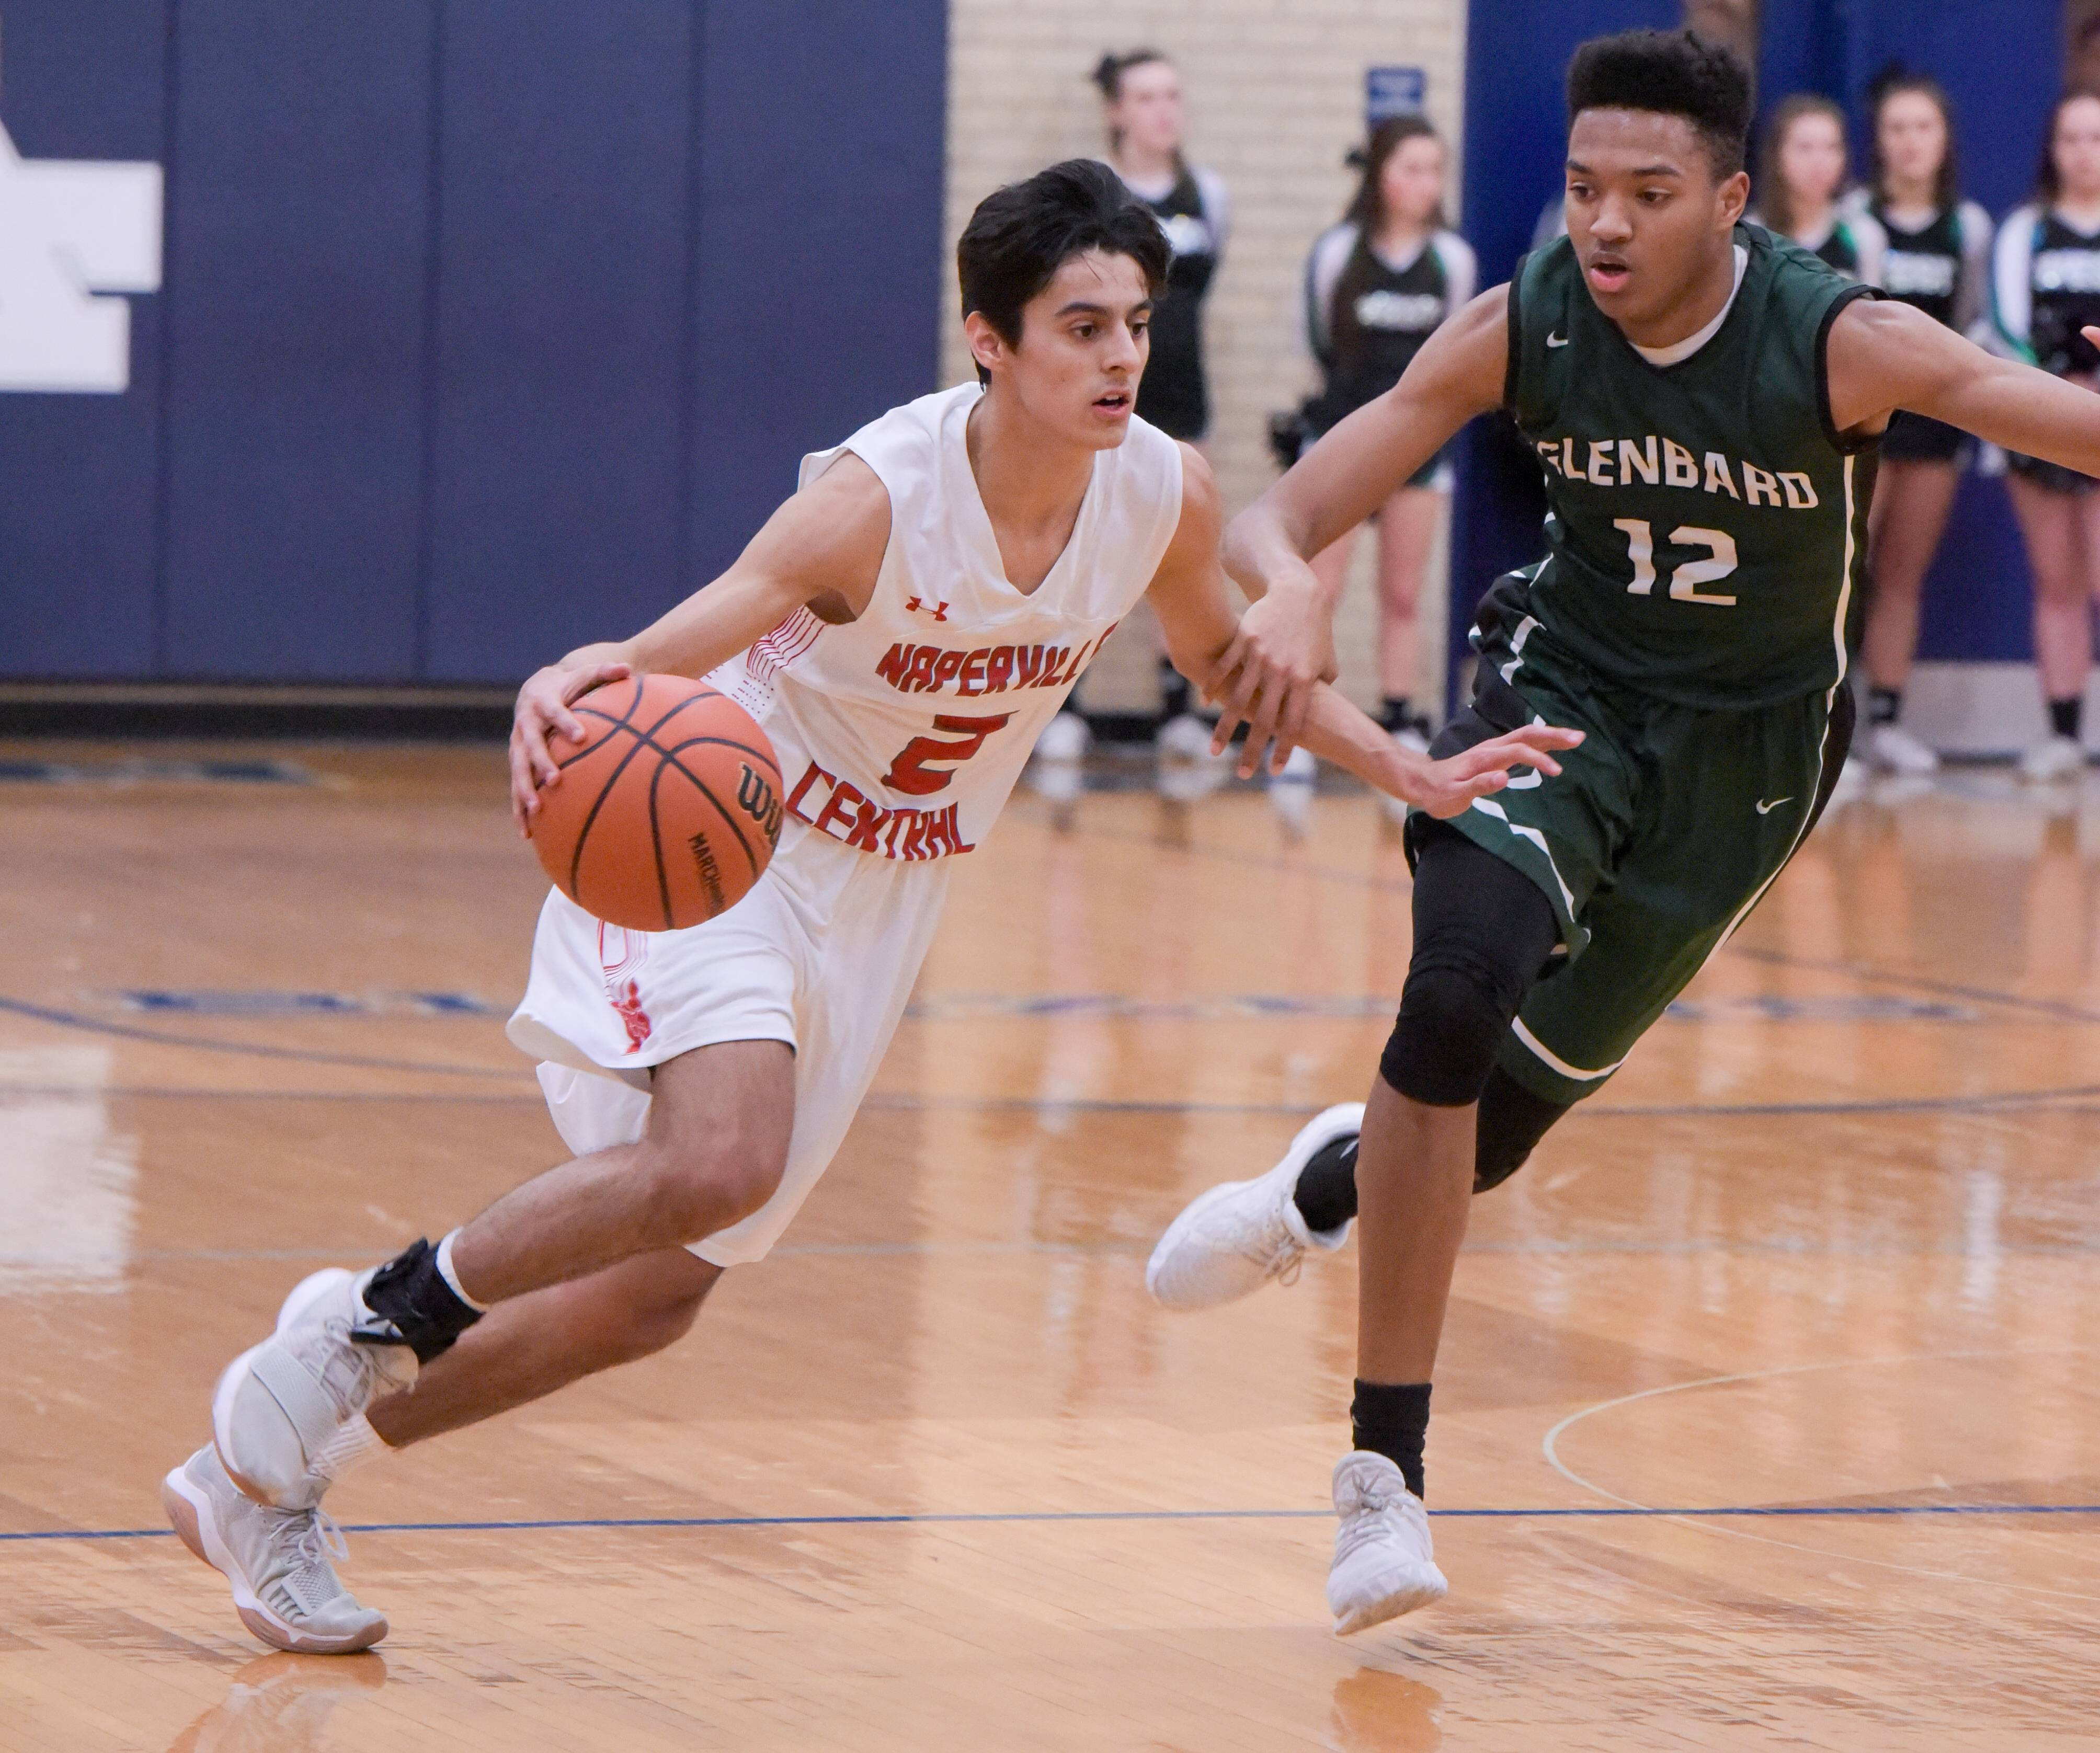 Naperville Central's Tyler O'Brien (2) drives past Glenbard West's Evan Taylor (12) during the boys Class 4A regional semifinals basketball game at Addison Trail on February 28, 2018.